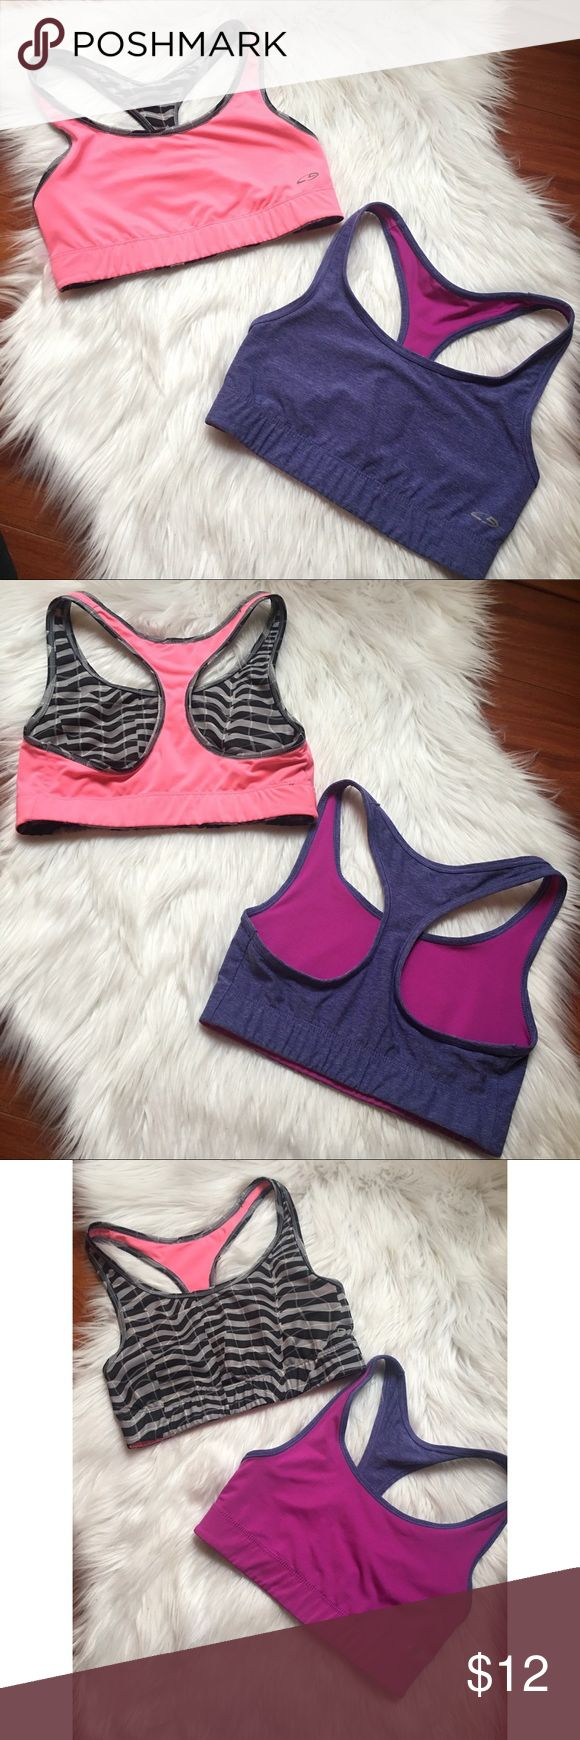 Set of 2 reversible Champion sports bras Two reversible sports bras size XS. Doesn't have tags to show the size b/c of the reversible design. Can be sold as a set or bought individually for 6$ each. Previously worn with care. Great condition, no stains. Champion Intimates & Sleepwear Bras